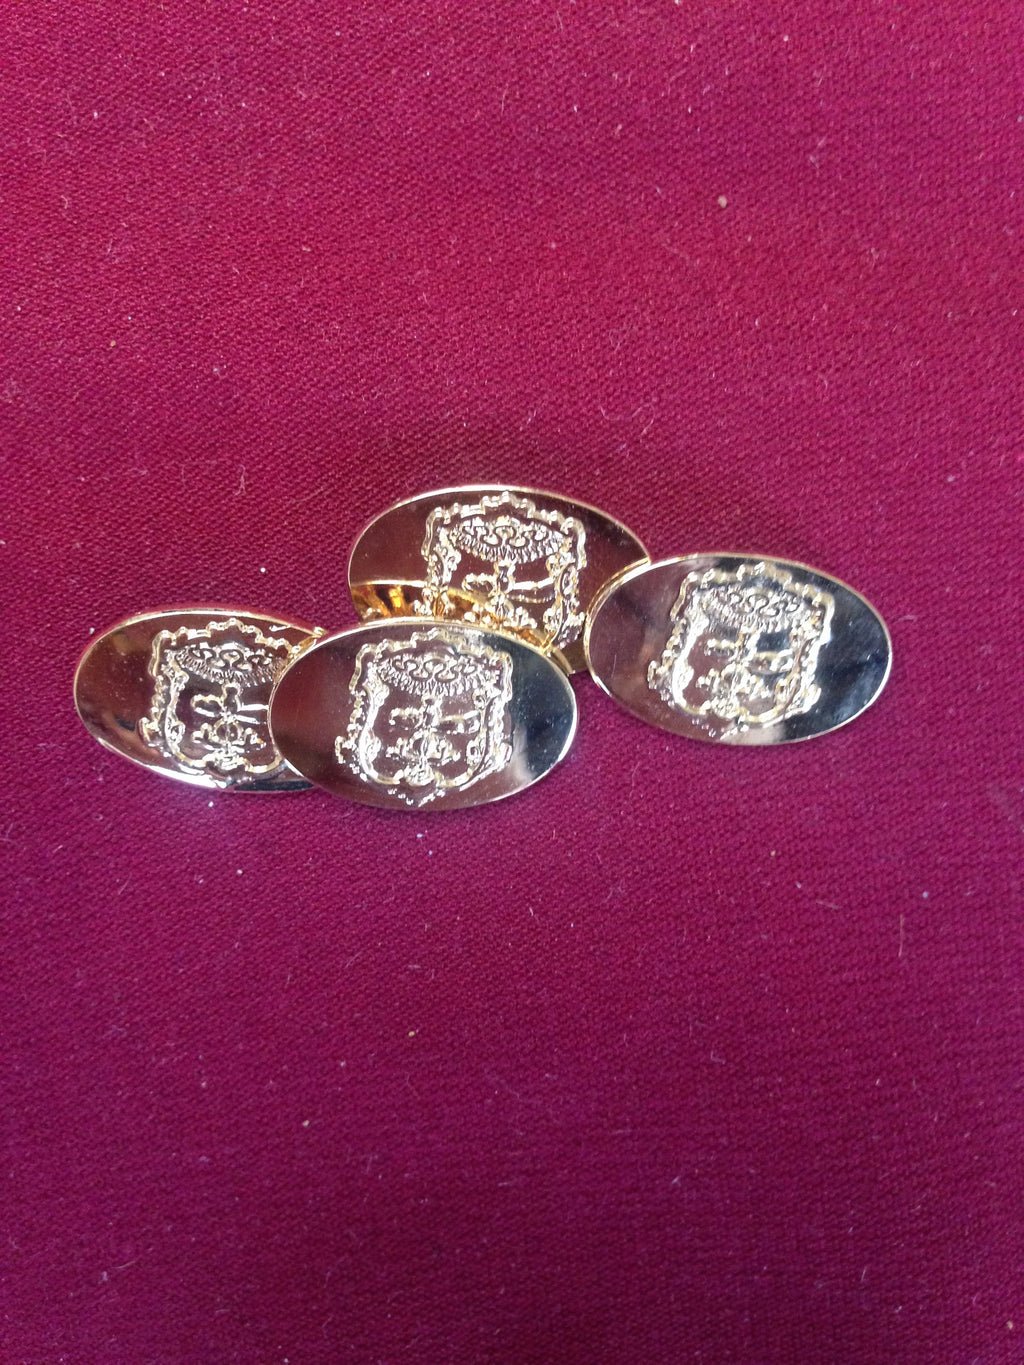 Medical College Cufflinks